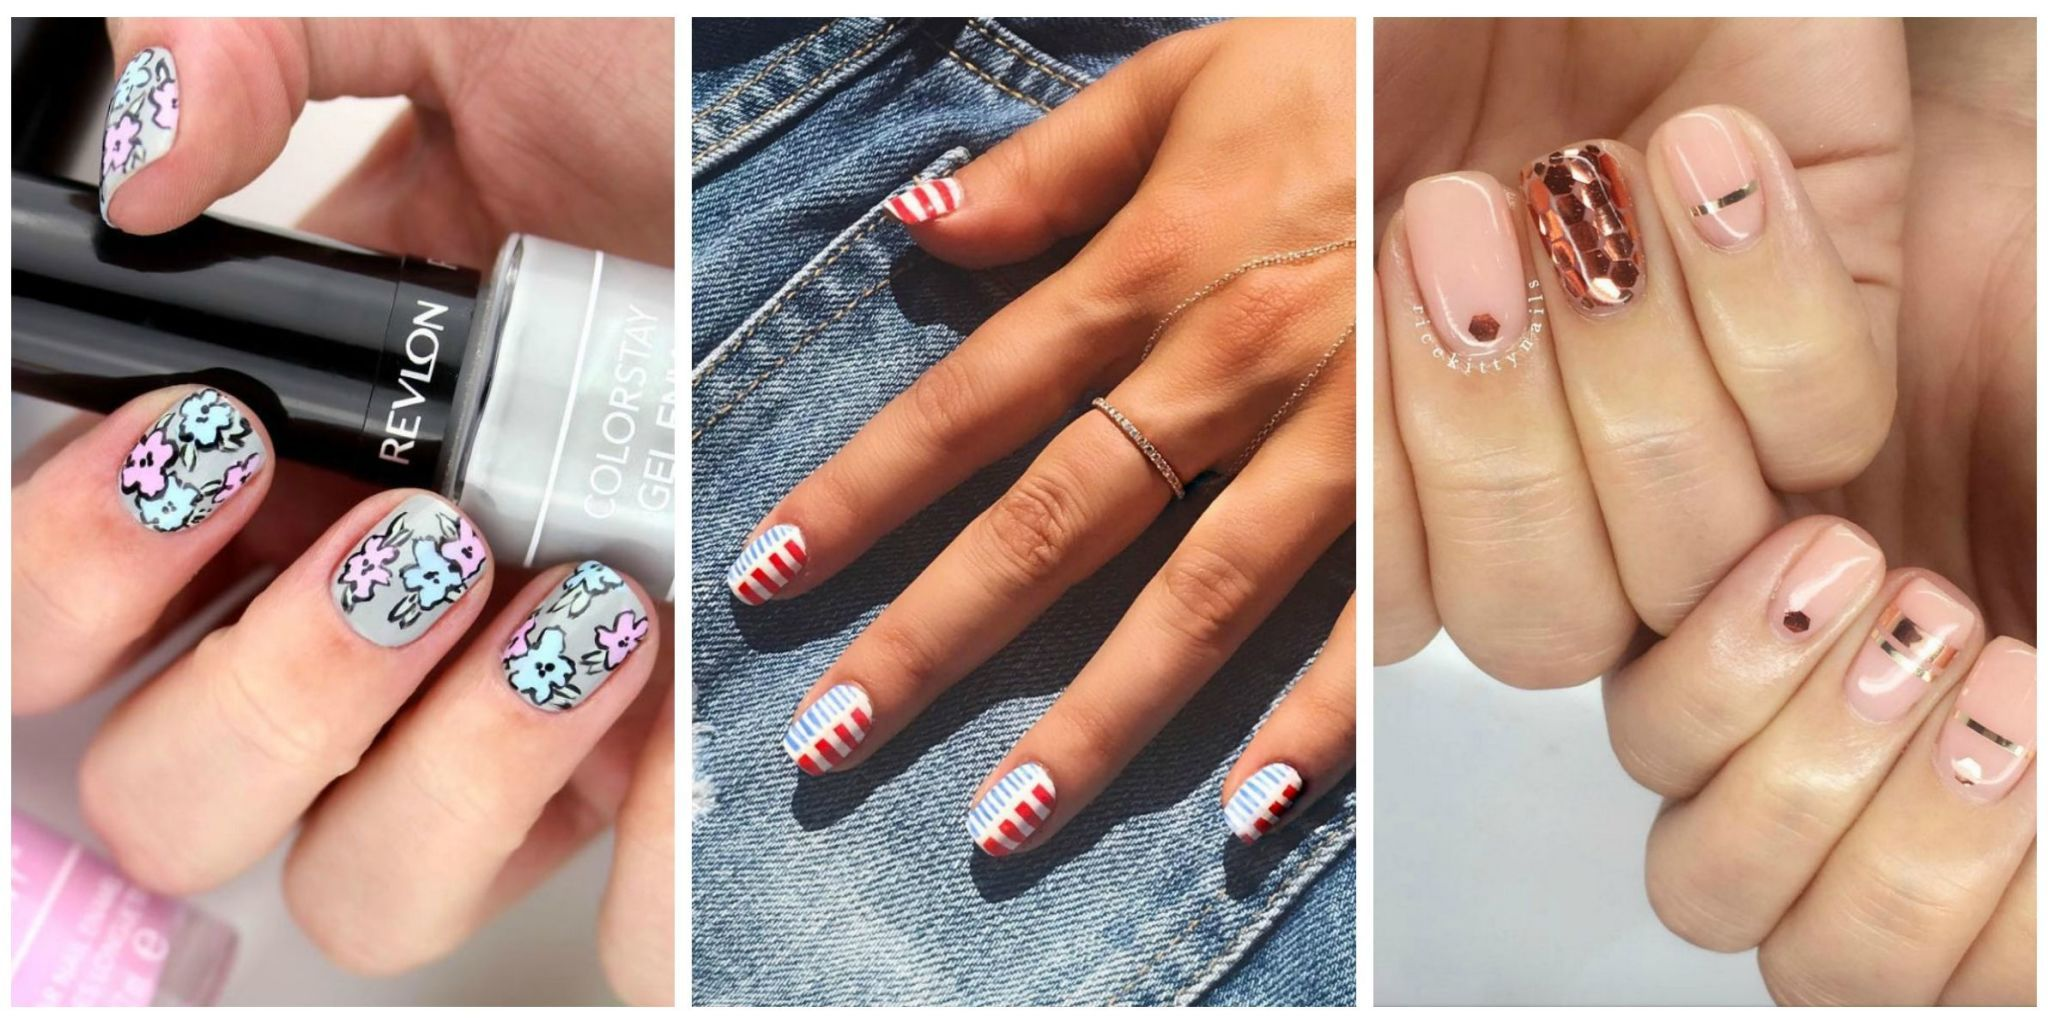 Stock up on new polish now because youu0027re going to want to master and show off these nail designs ... & 20+ Cute Summer Nail Design Ideas - Best Summer Nails of 2017